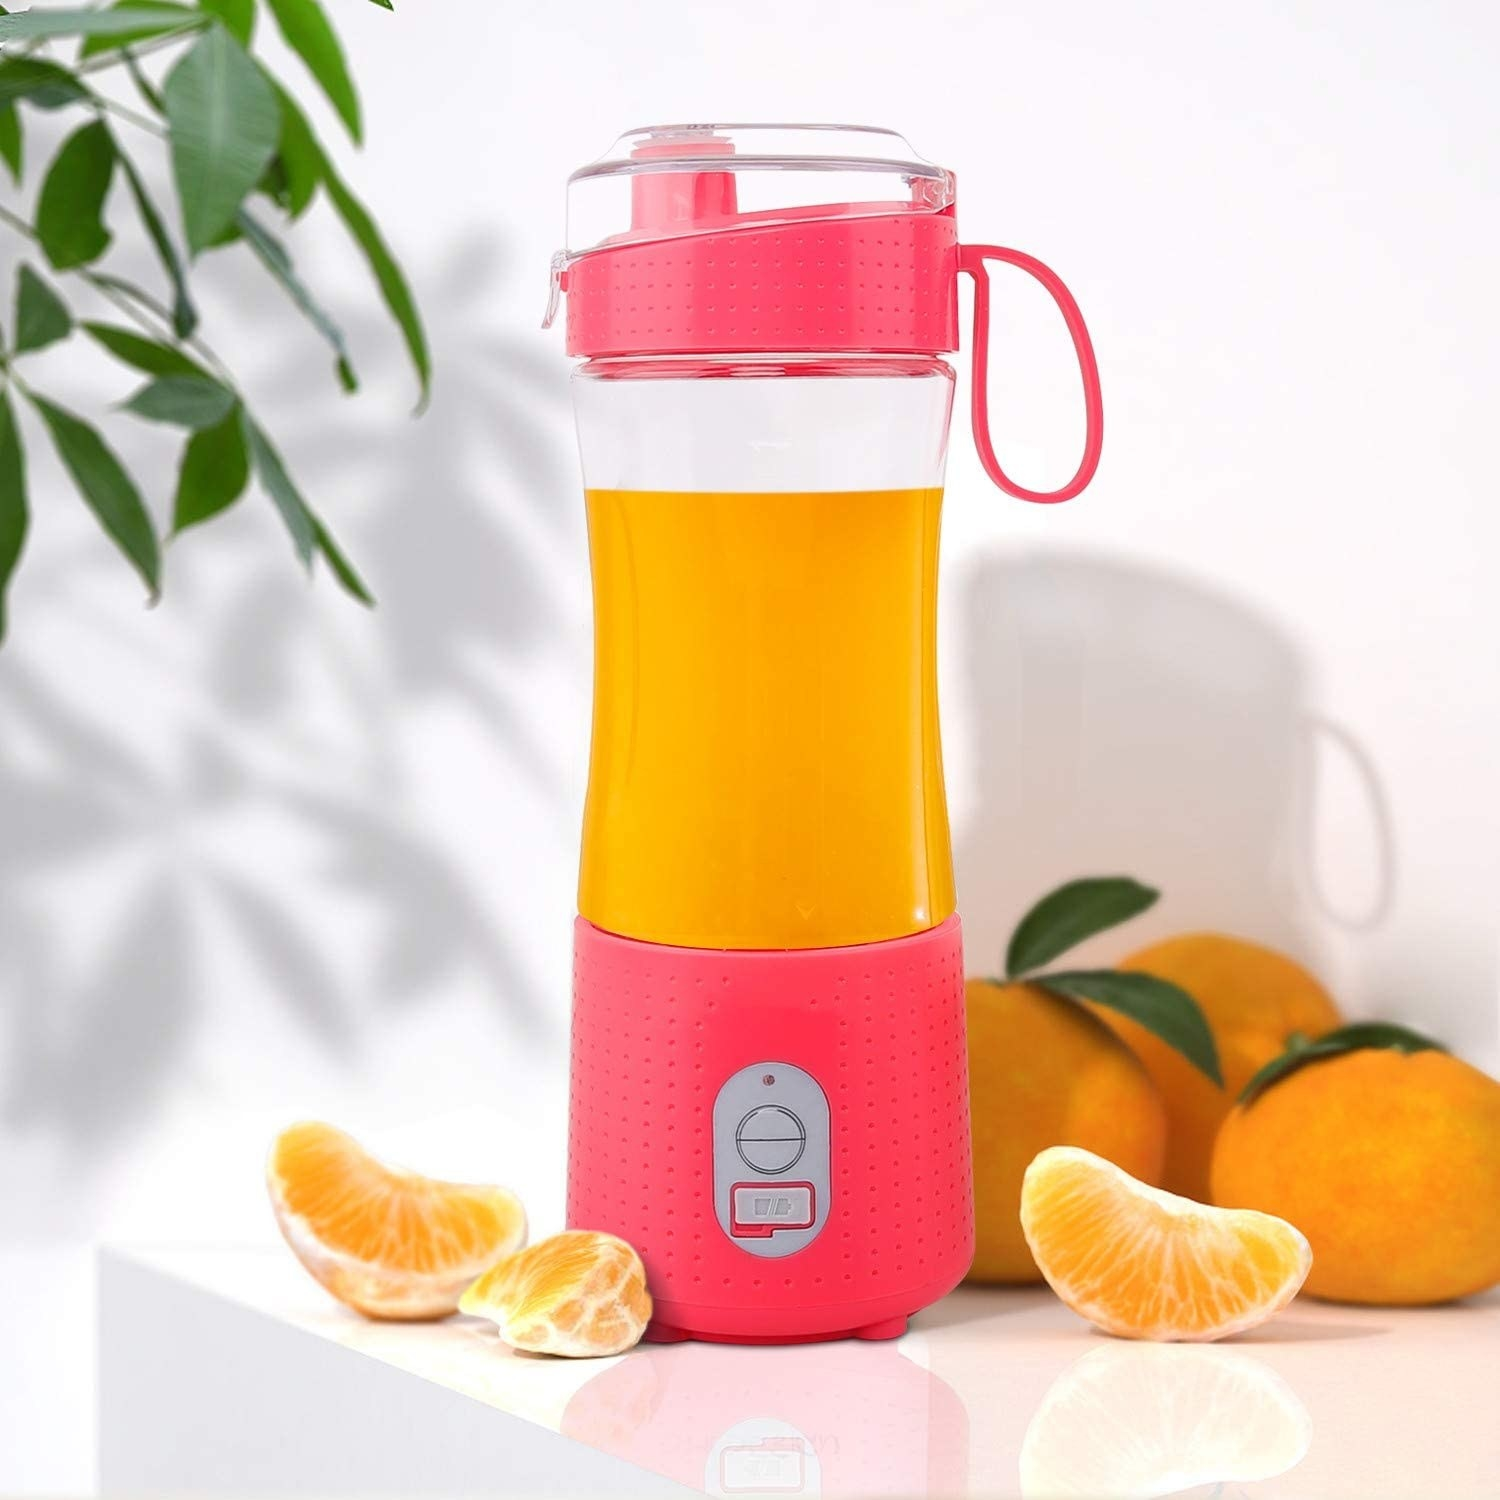 A handheld blender filled with fresh orange juice next to wedges of clementines